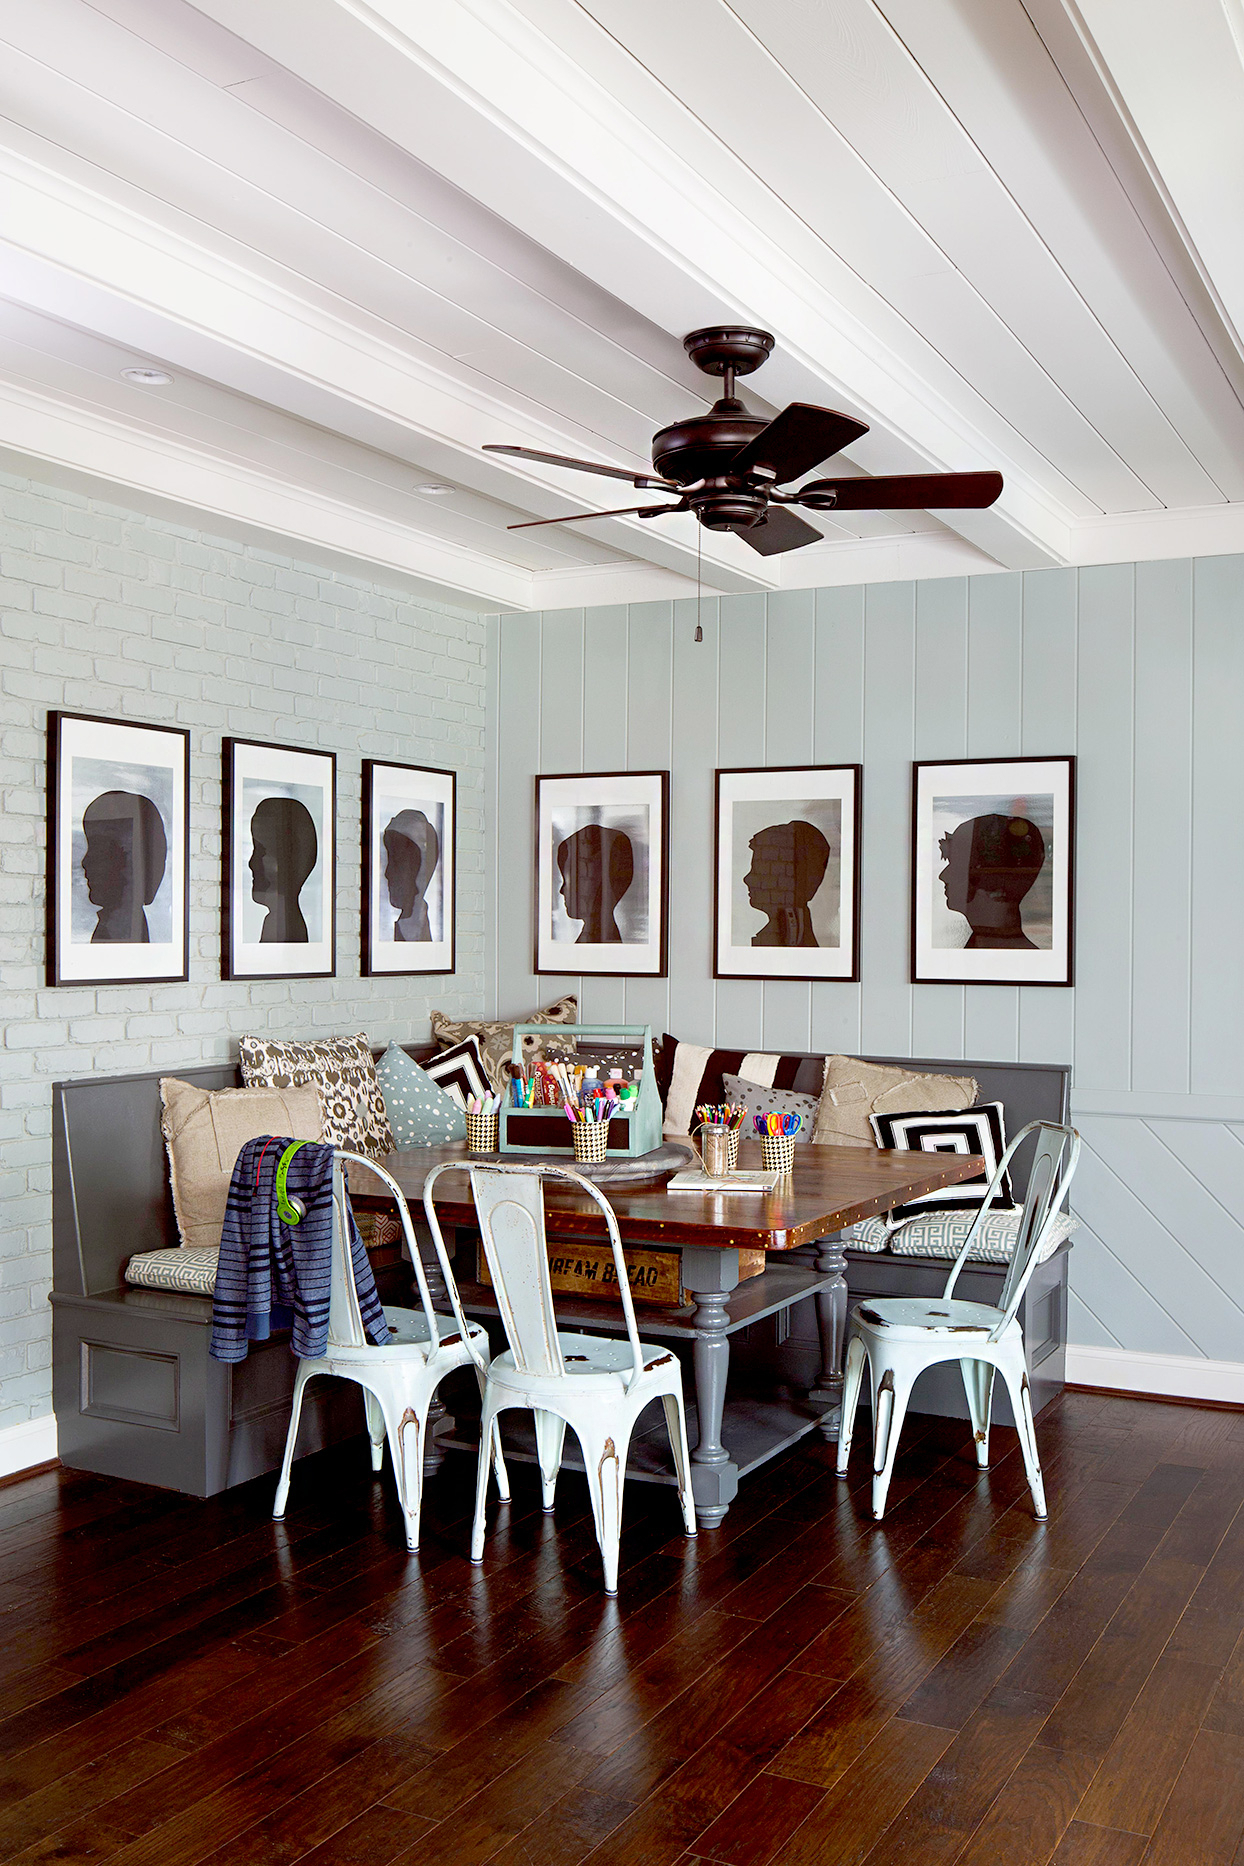 32 Creative Ideas For Every Blank Wall In Your Home Within Casual Country Eat Here Retro Wall Decor (View 7 of 30)